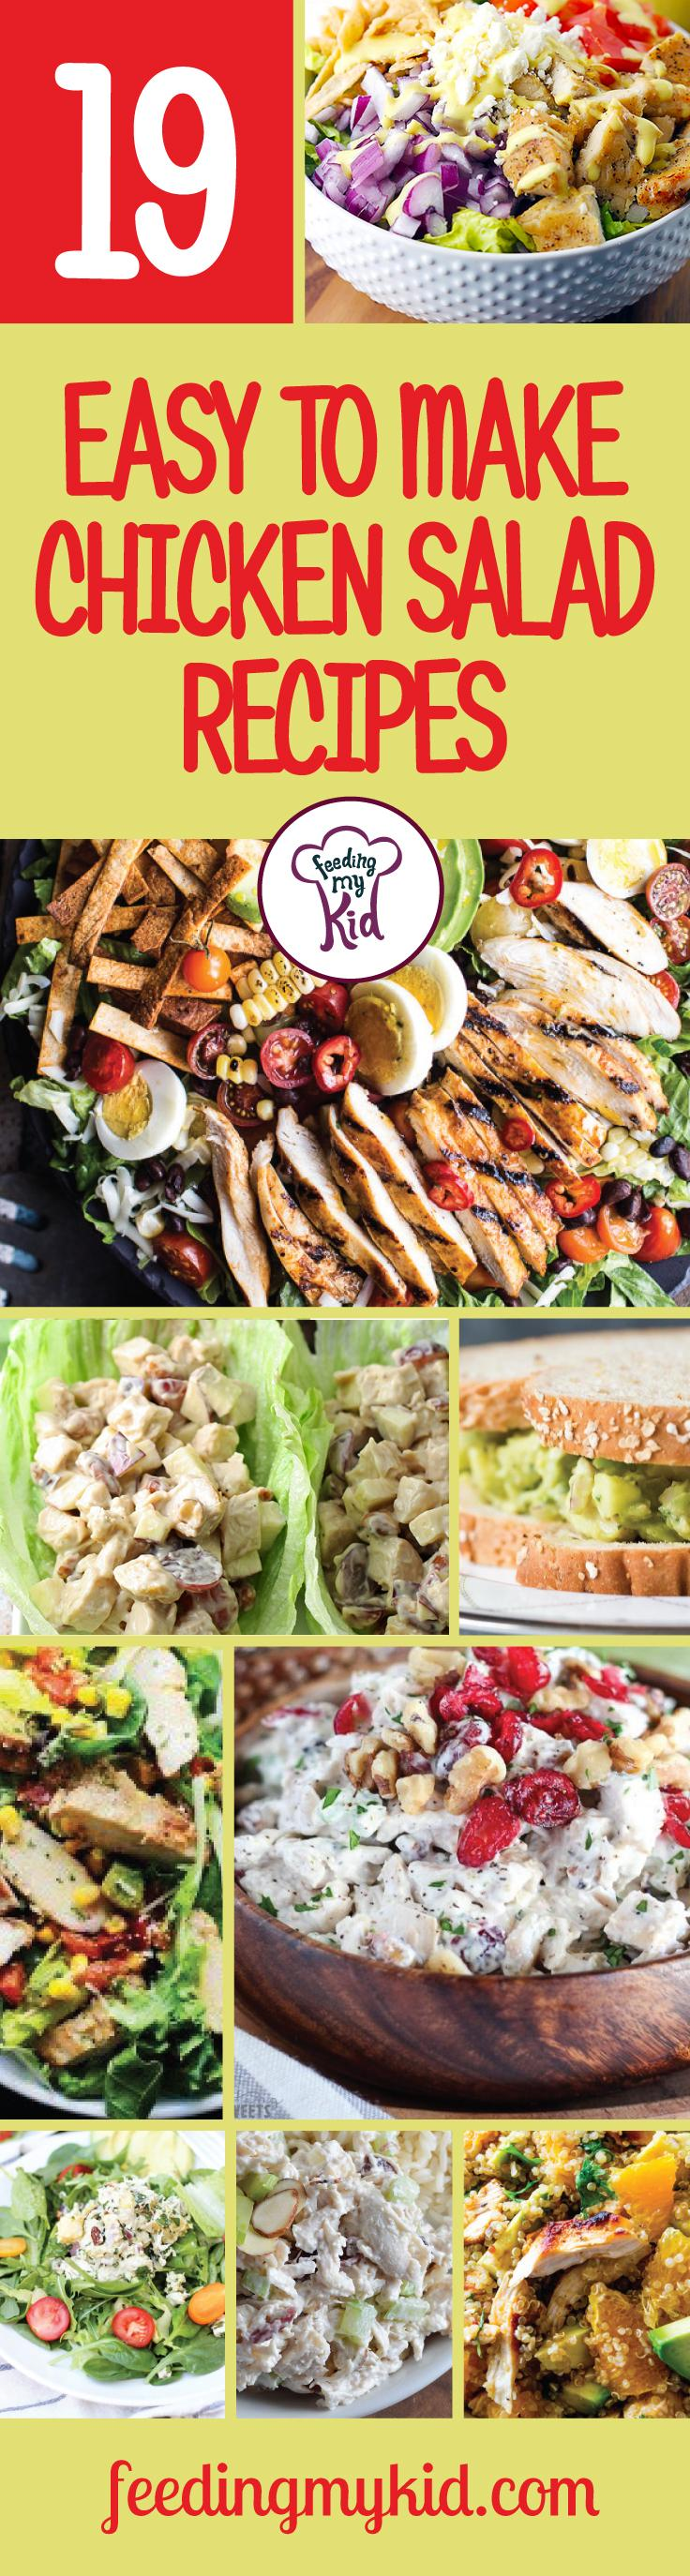 19 Easy To Make Chicken Salad Recipes This Is A Must Share Chicken Salad